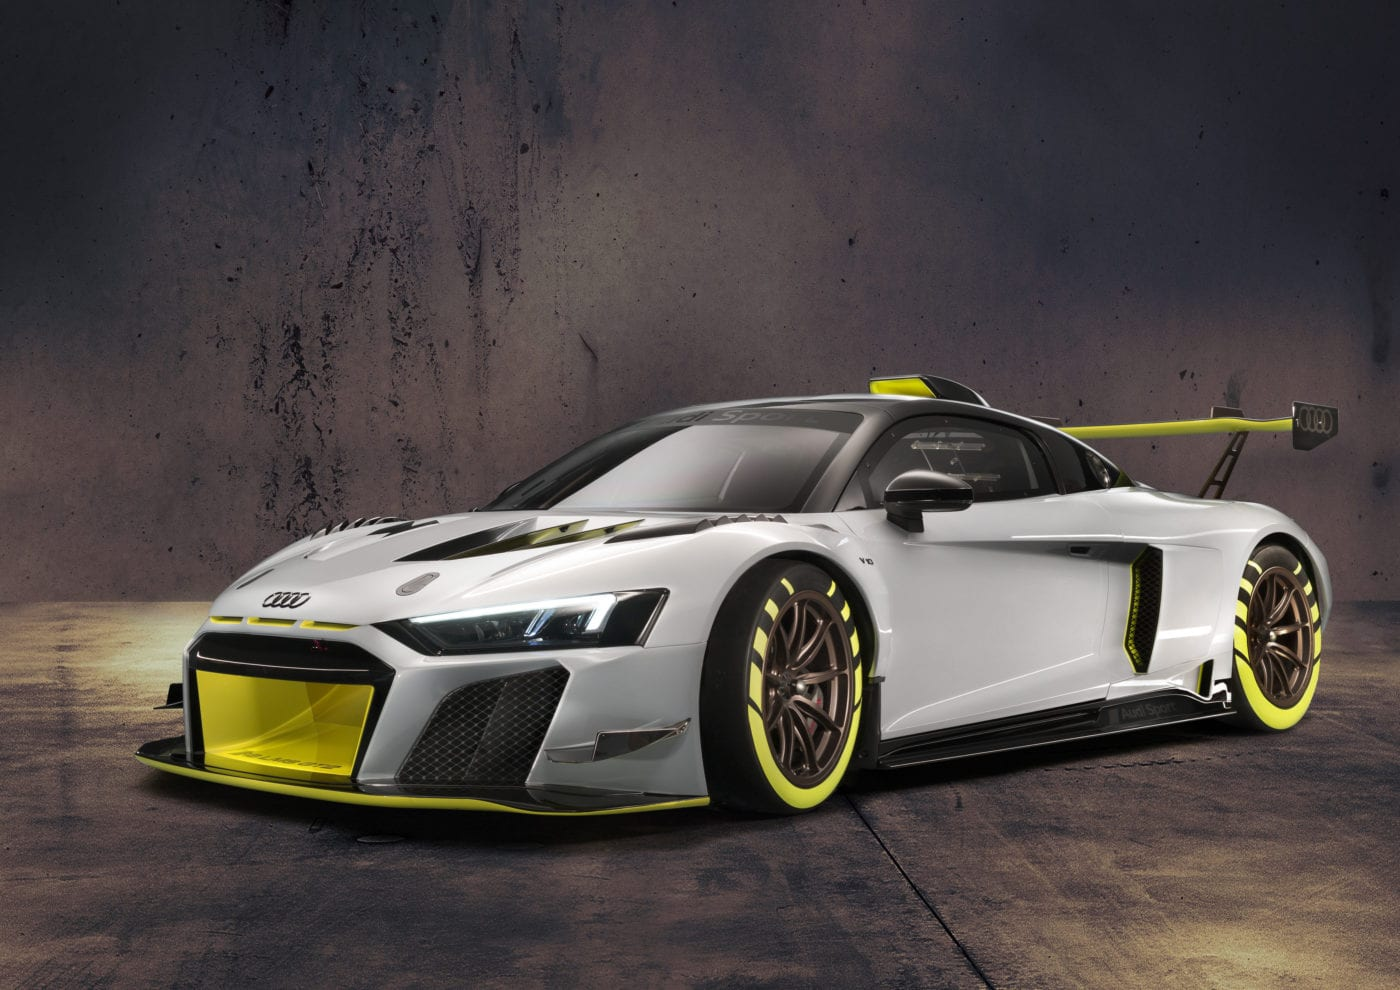 Audi R8 Lms Gt2 Revealed Audi S Most Powerful Customer Racing Car